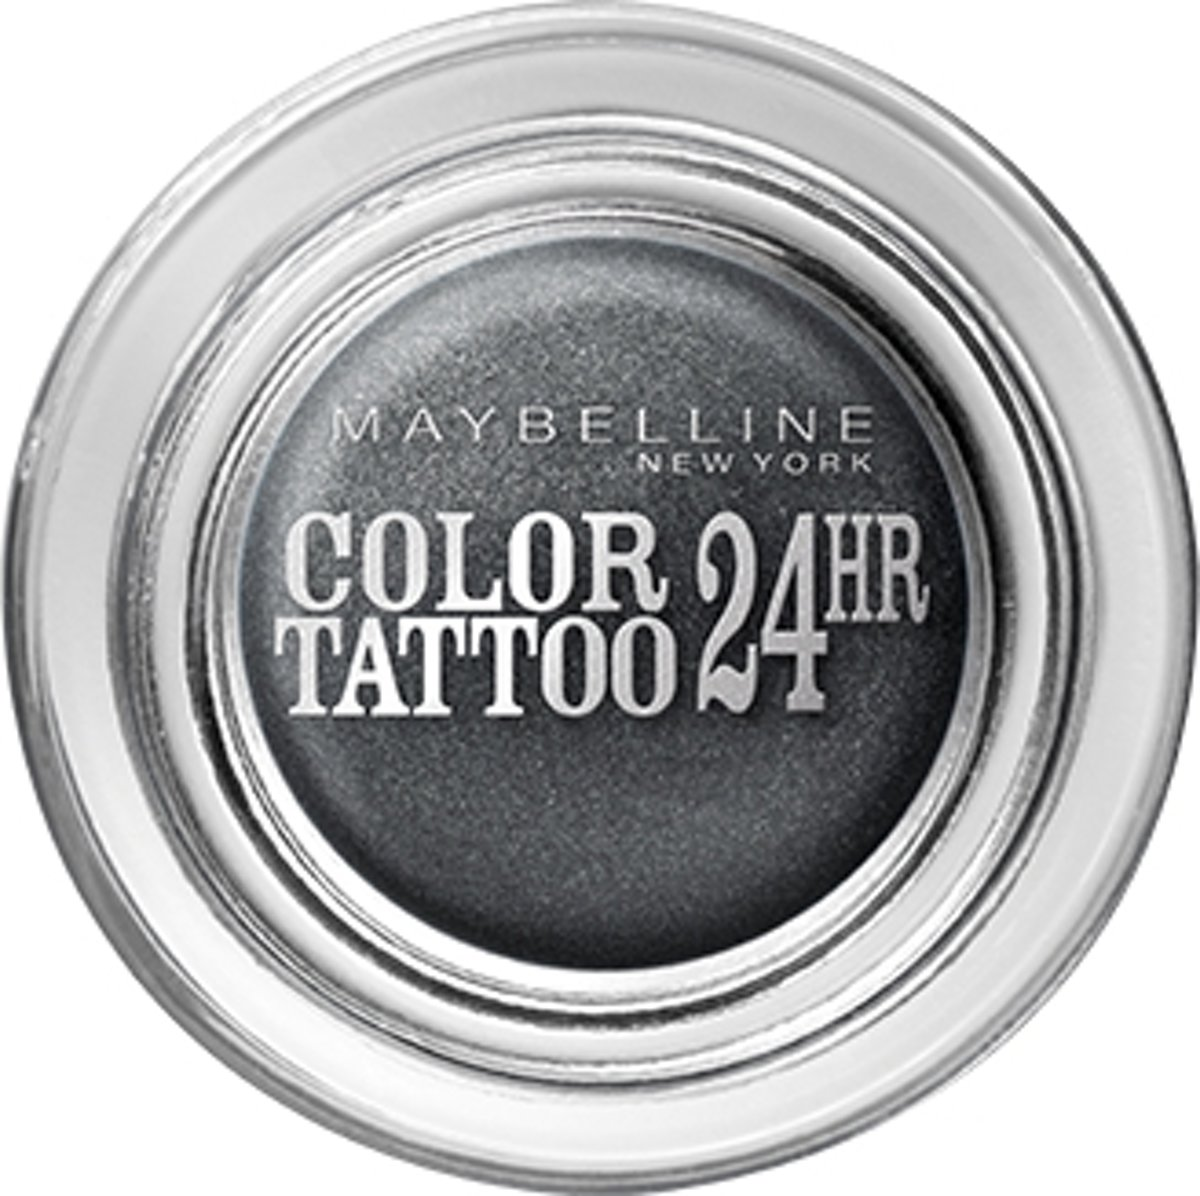 Maybelline Eye Studio Color Tatto 55 Immortal Charcoal oogschaduw Black Shimmer